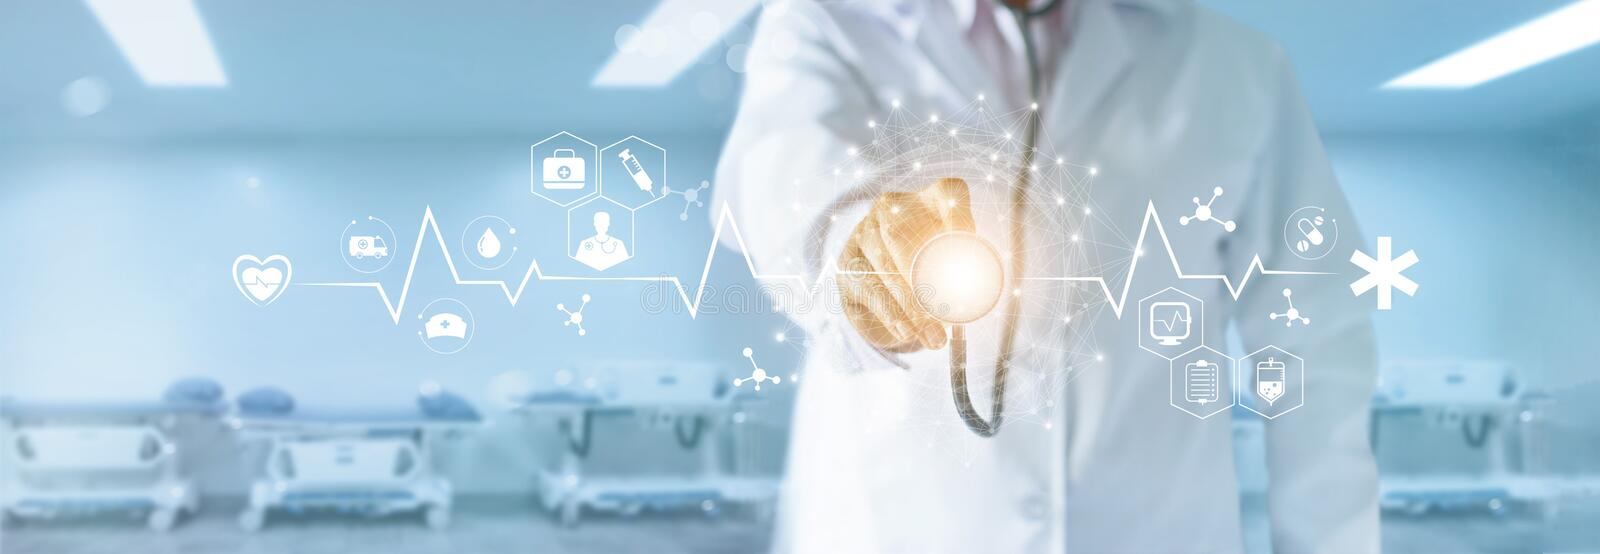 Medicine doctor with stethoscope touching medical icons network. Medicine doctor with stethoscope in hand touching medical network icon and global connection on royalty free stock photography